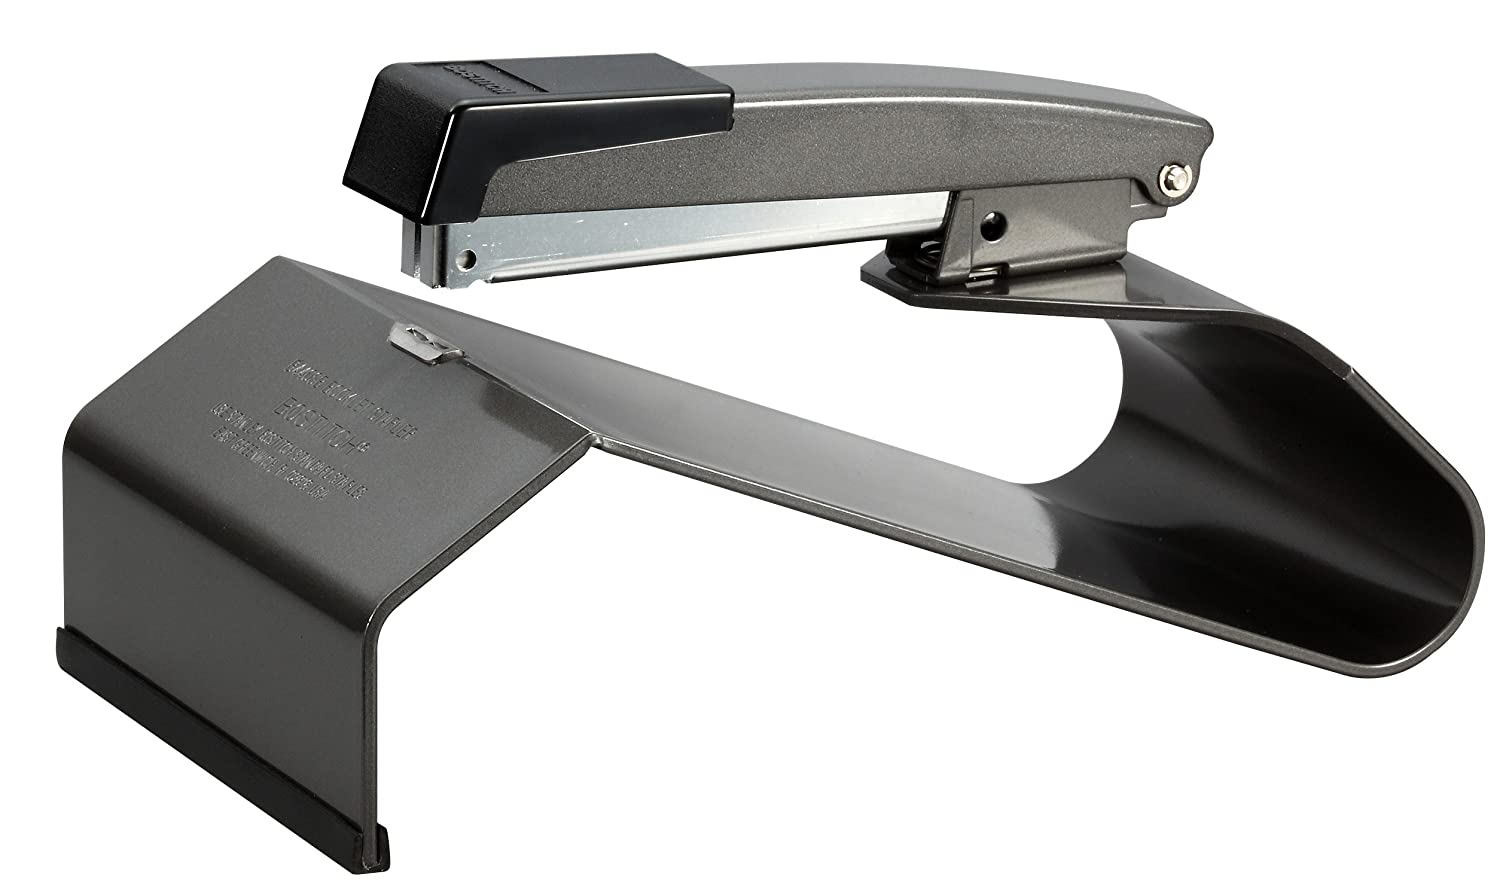 Bostitch No-Jam Booklet Stapler, Black (B440SB)